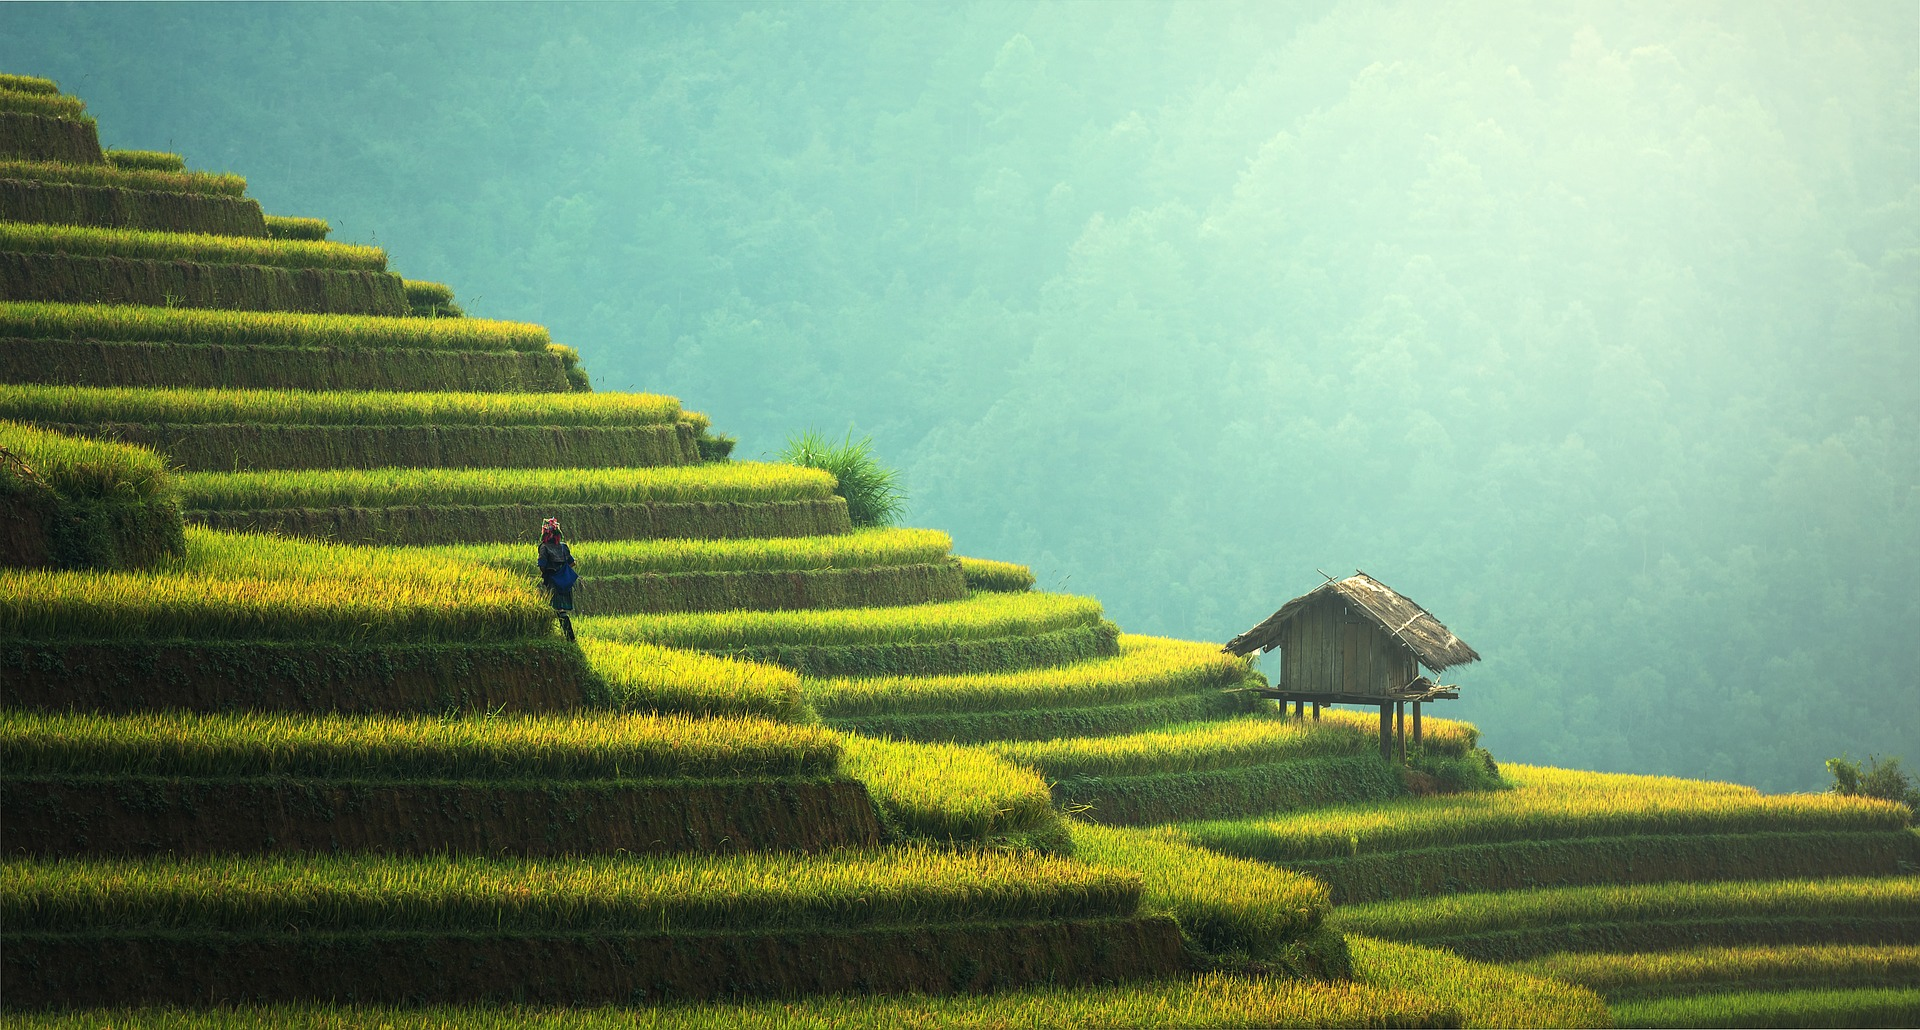 Man tending terraced rice paddies